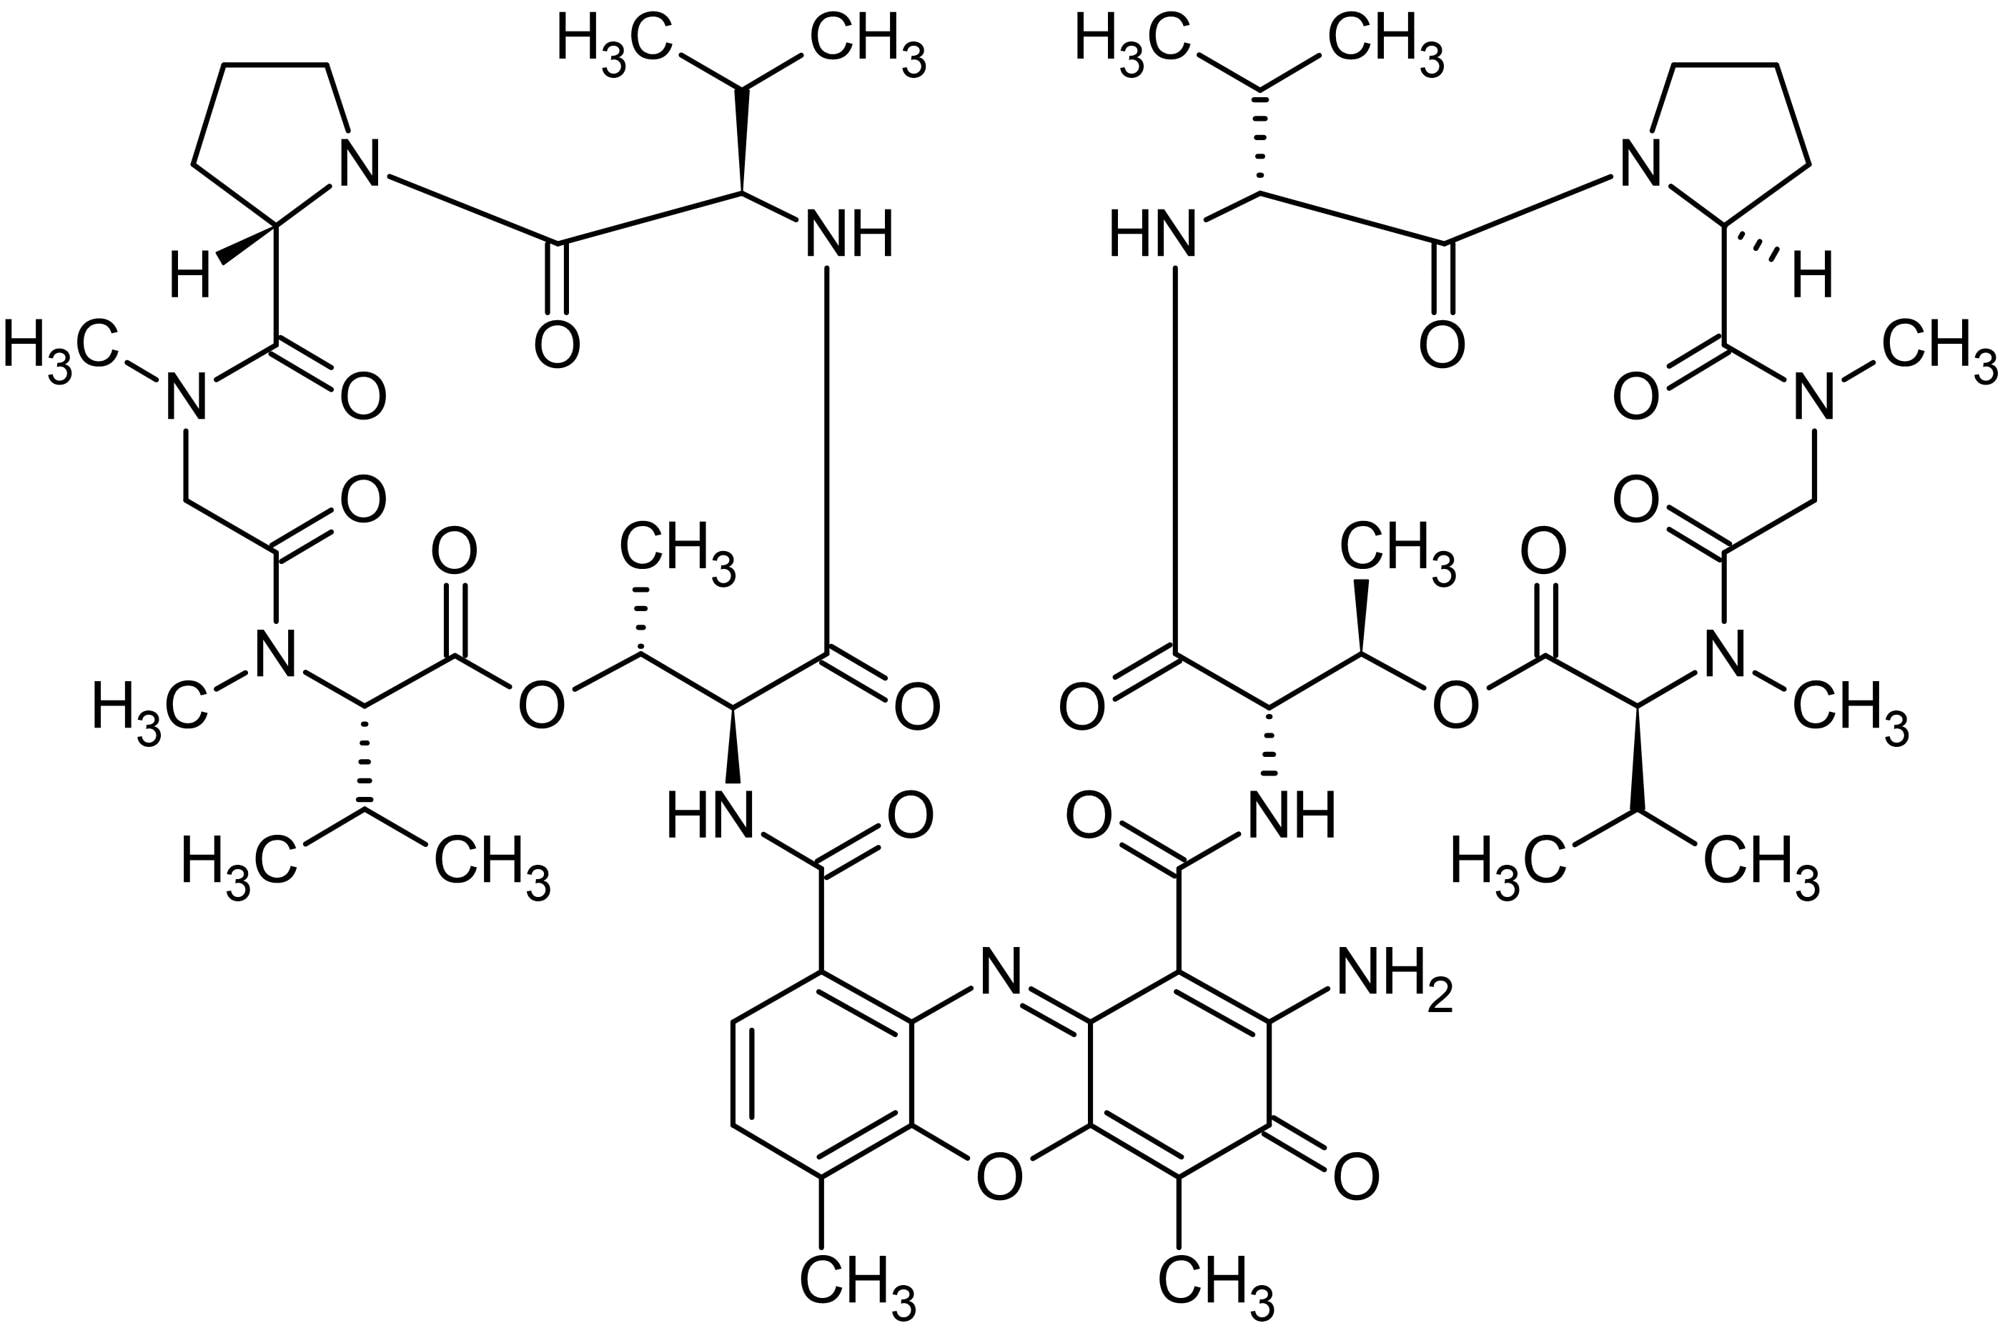 Chemical Structure - Actinomycin D (Dactinomycin), Nucleic acid and protein synthesis inhibitor (ab141058)